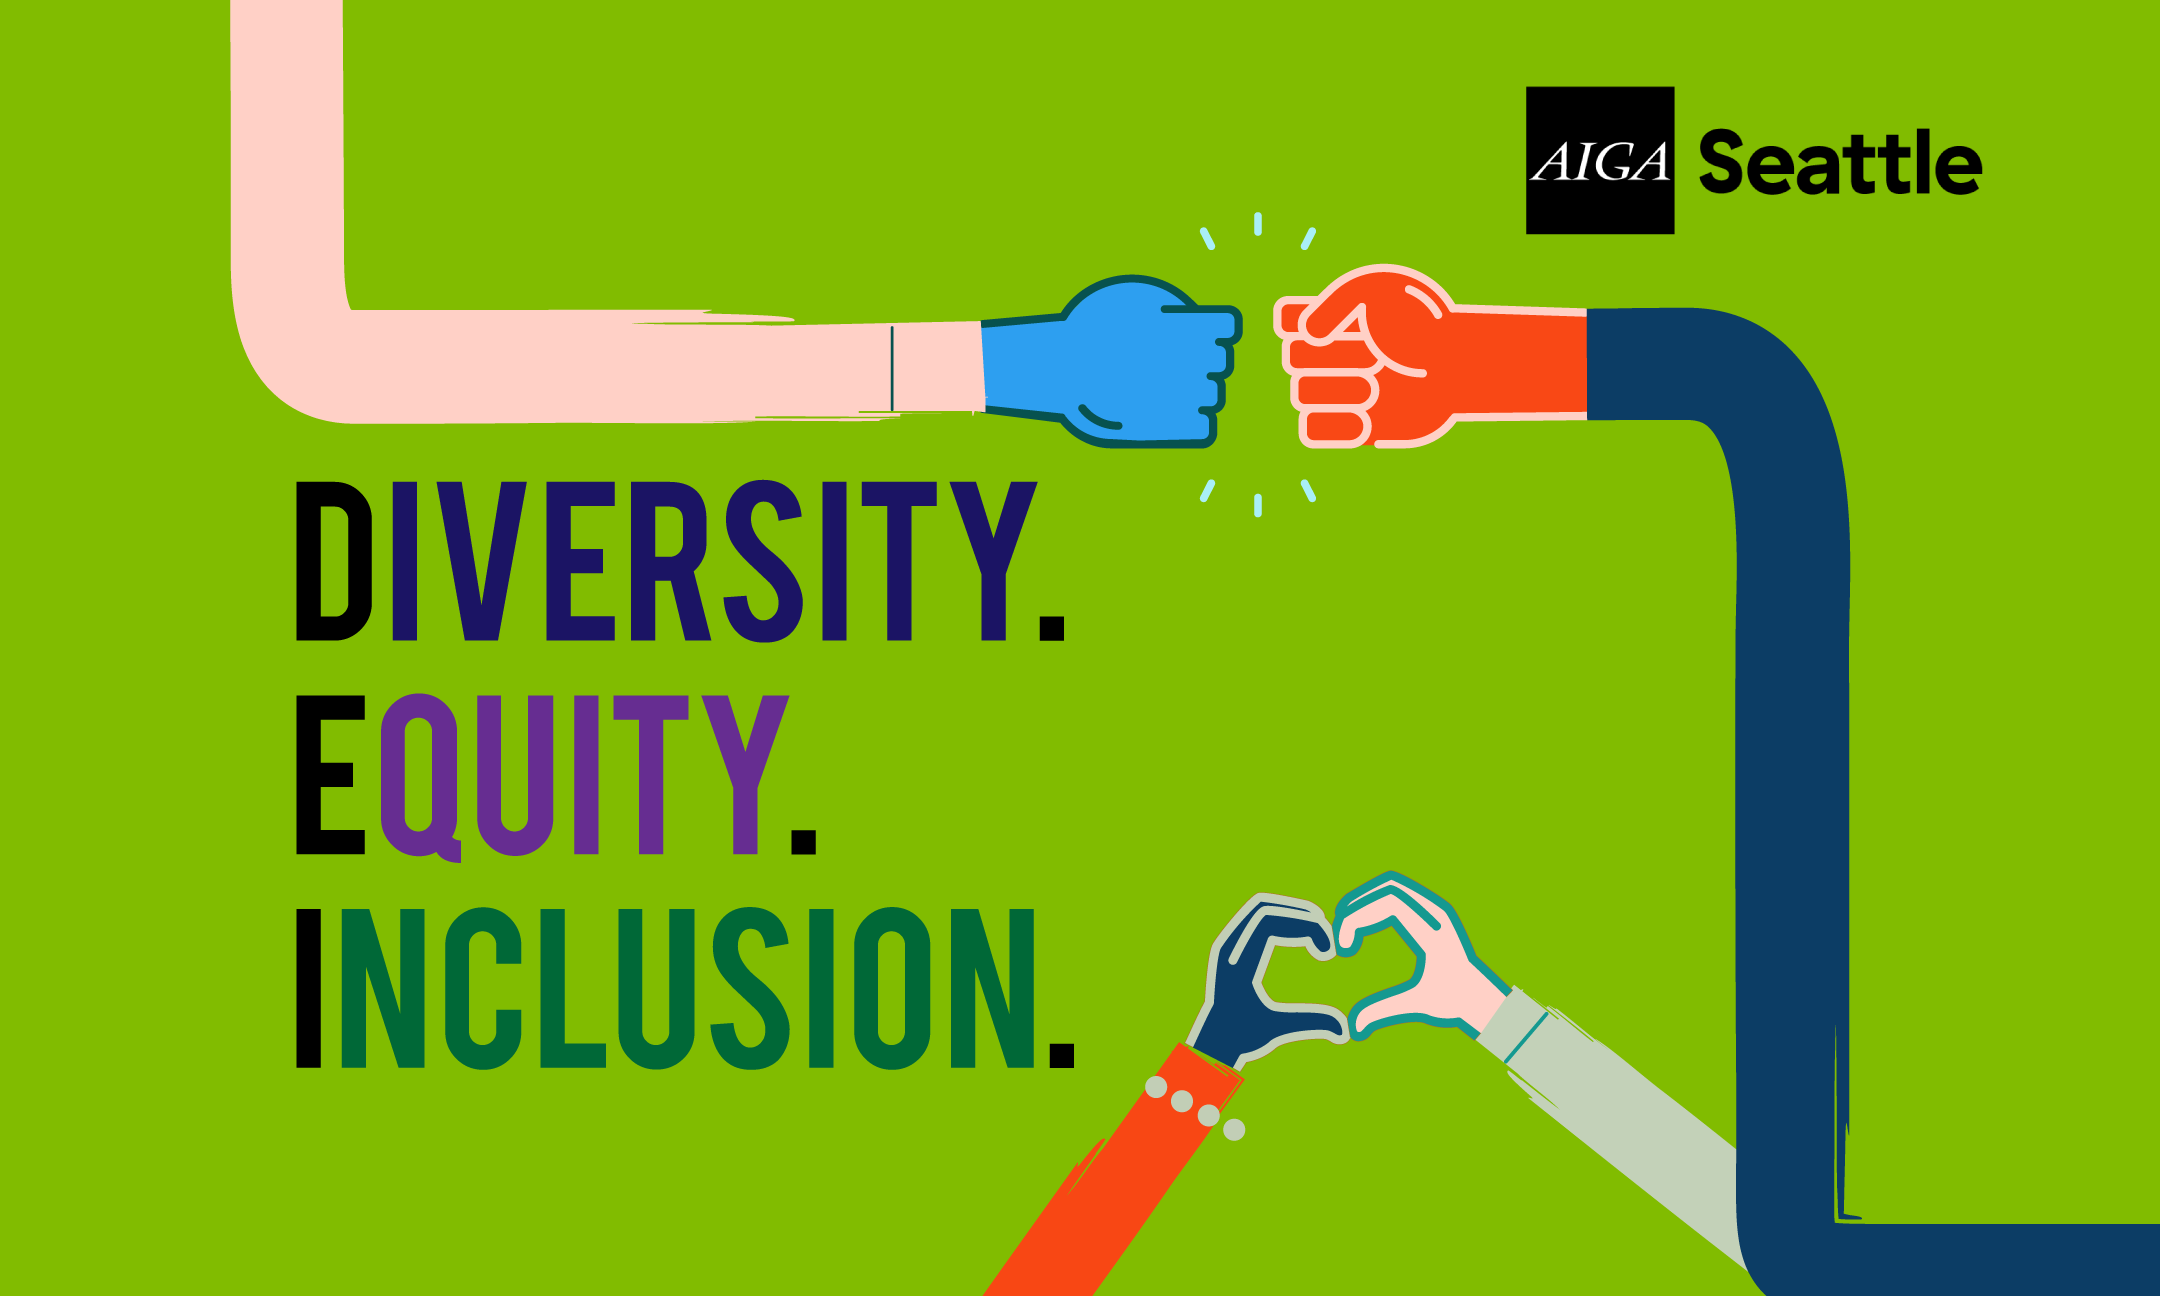 Diversity. Equity. Inclusion.